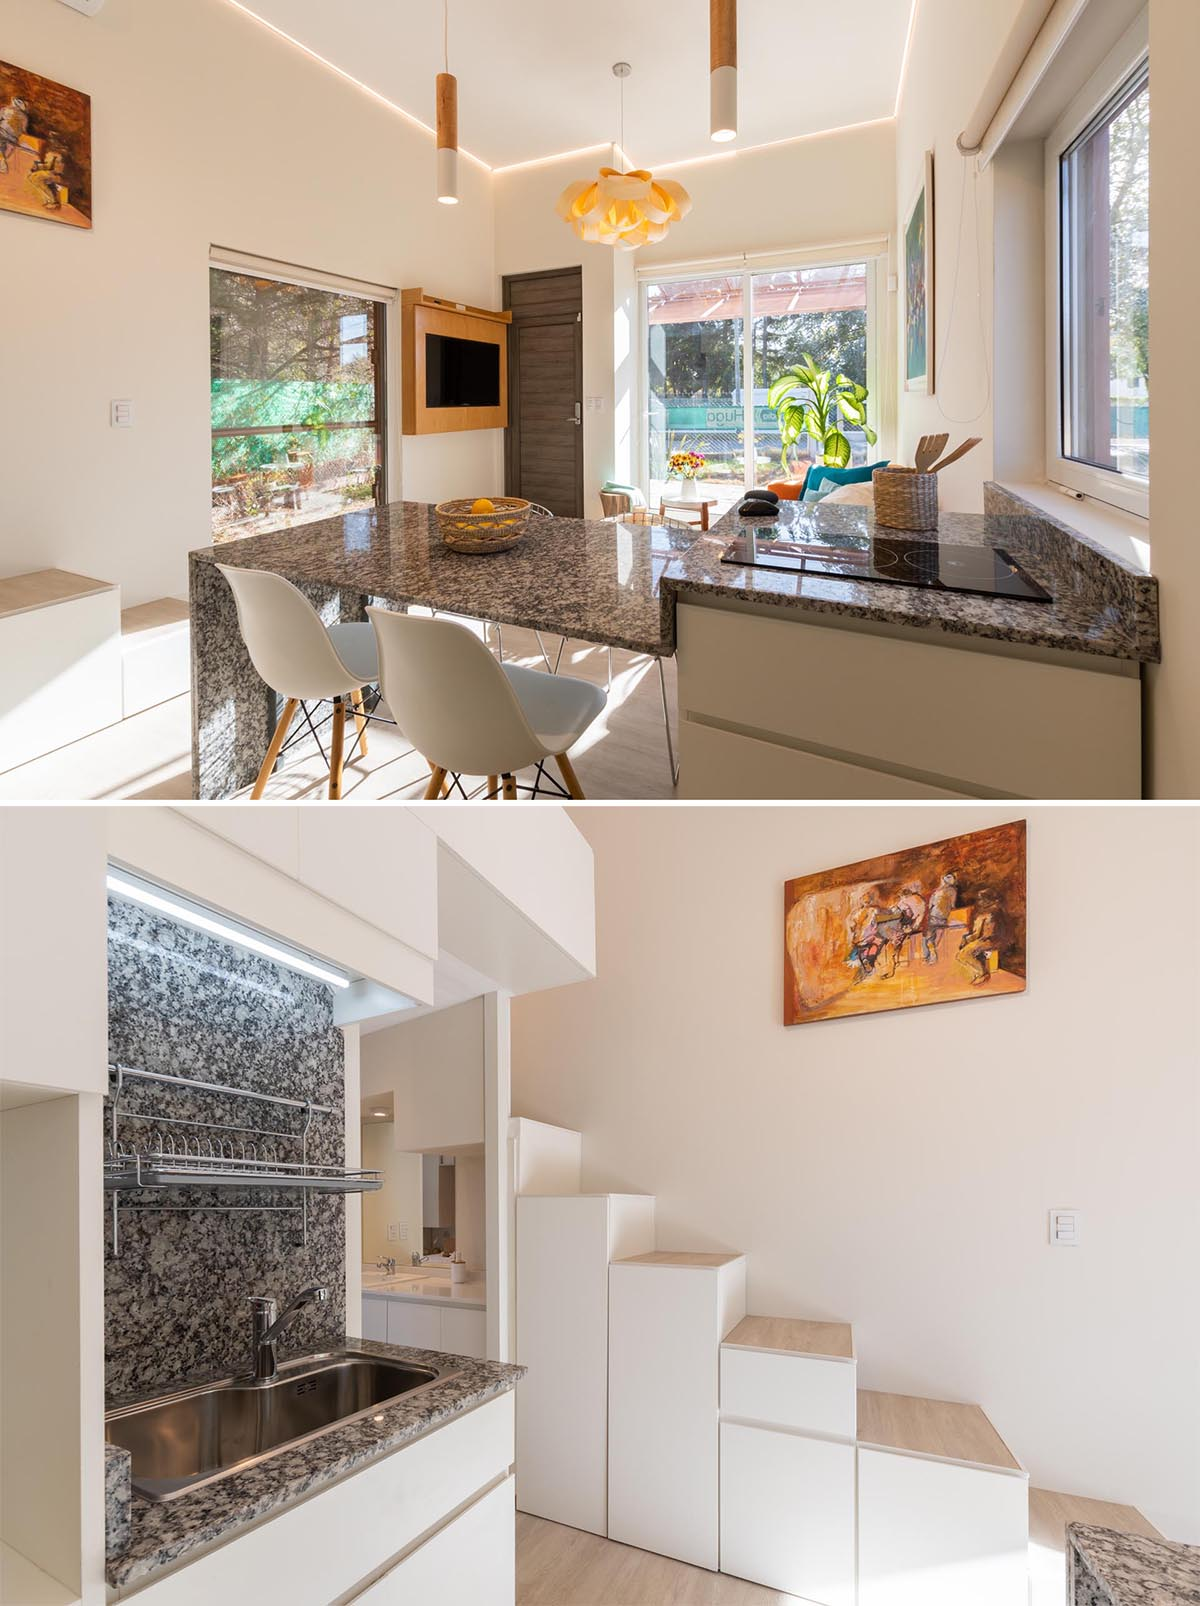 In this tiny home kitchen, there's a multi-level countertop with the section dedicated to the cooktop, and the lower acts as a countertop work surface and dining table.